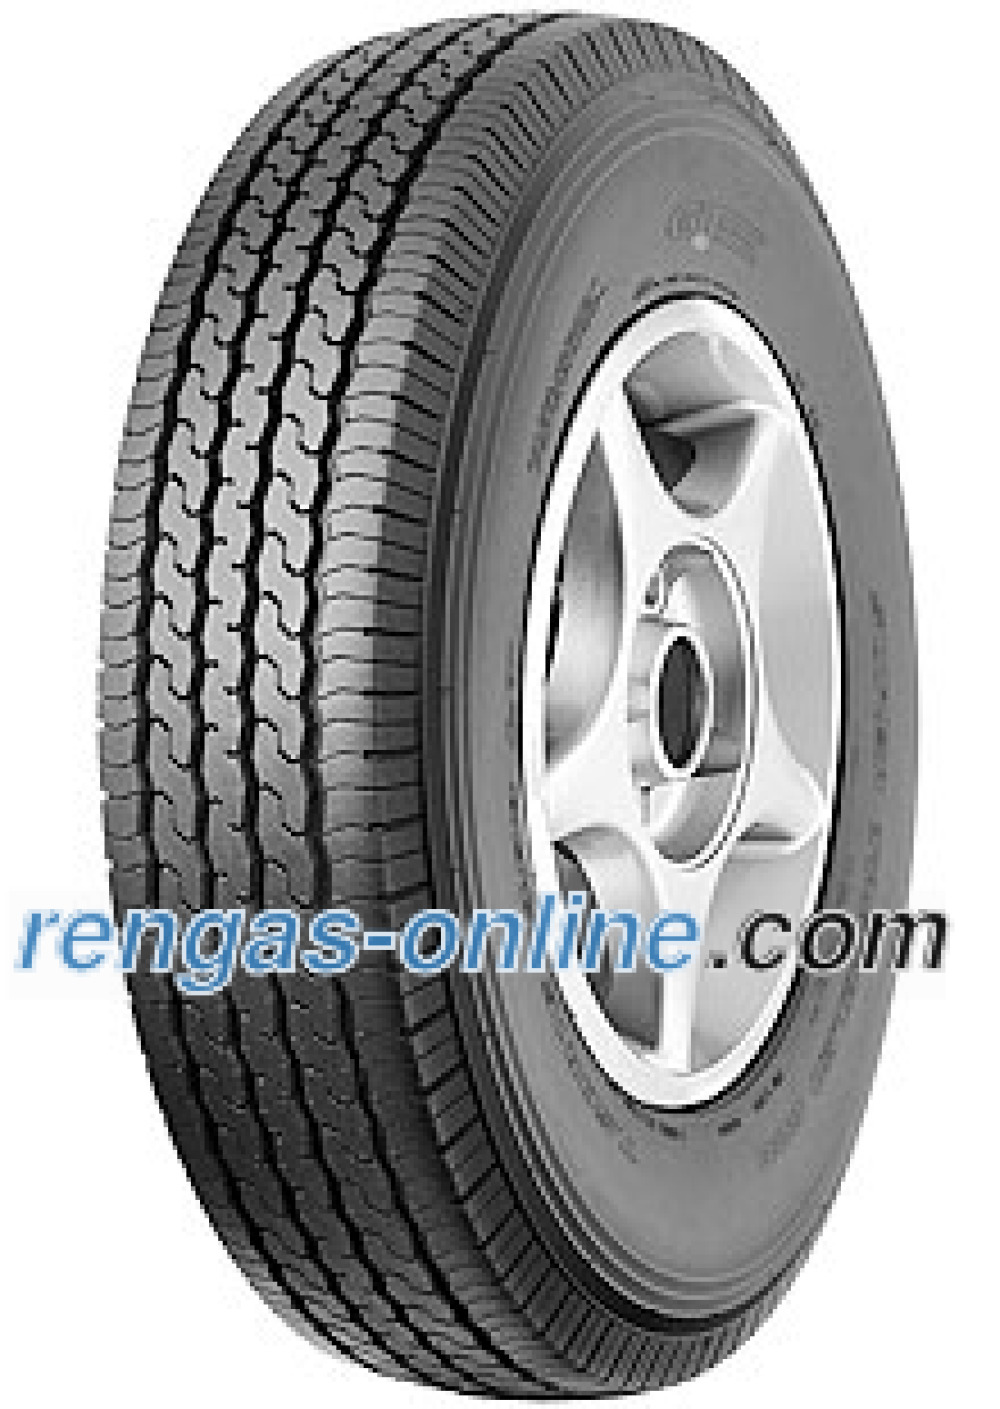 gt-radial-super-traveller-668-700100-r15-110105n